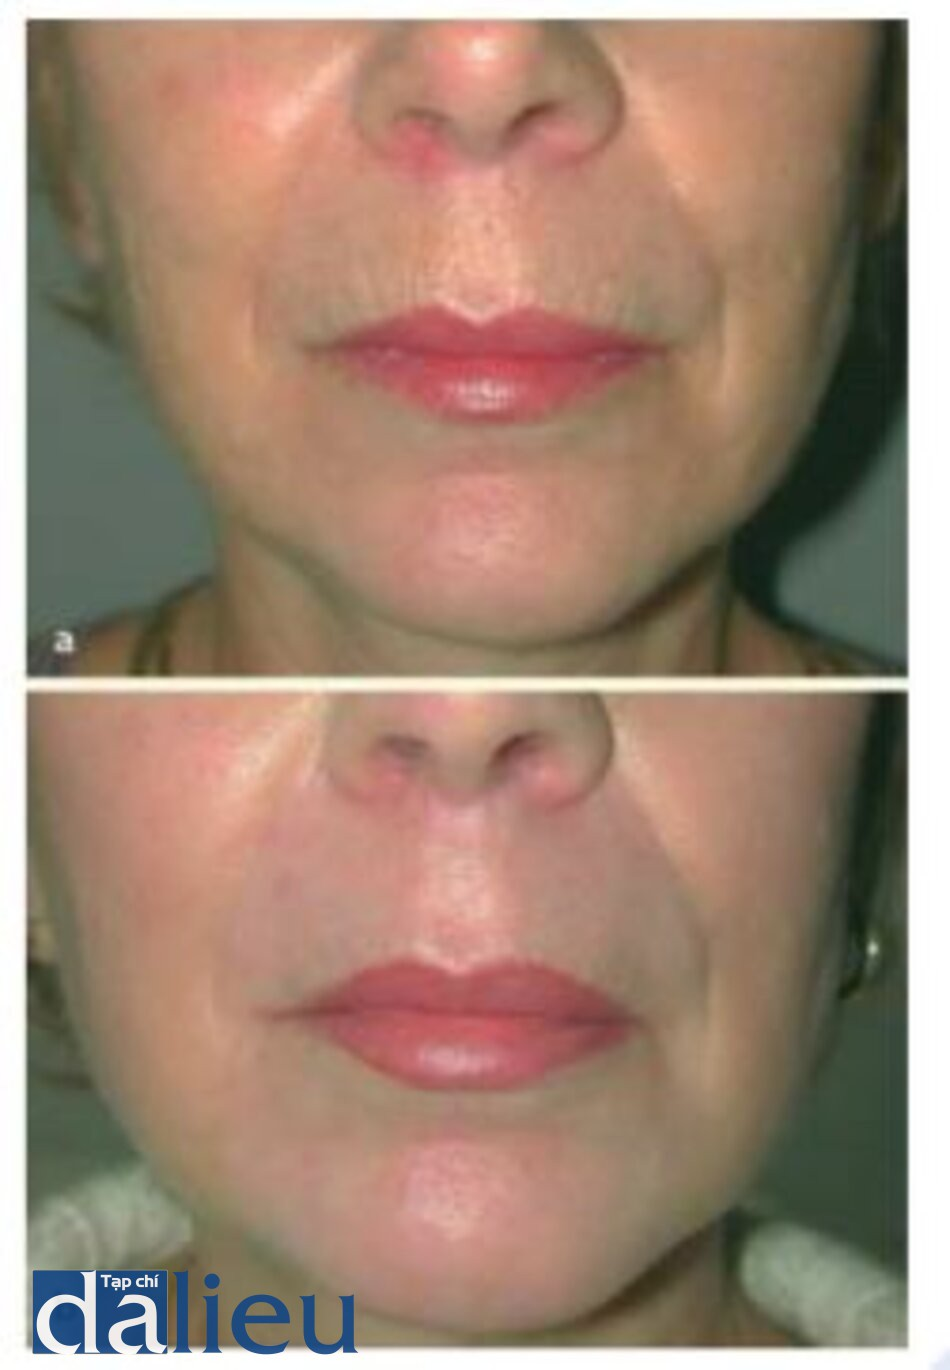 Fig. 1.9. a Before and b 3 months after erbium laser resurfacing to the upper lip for rhytides